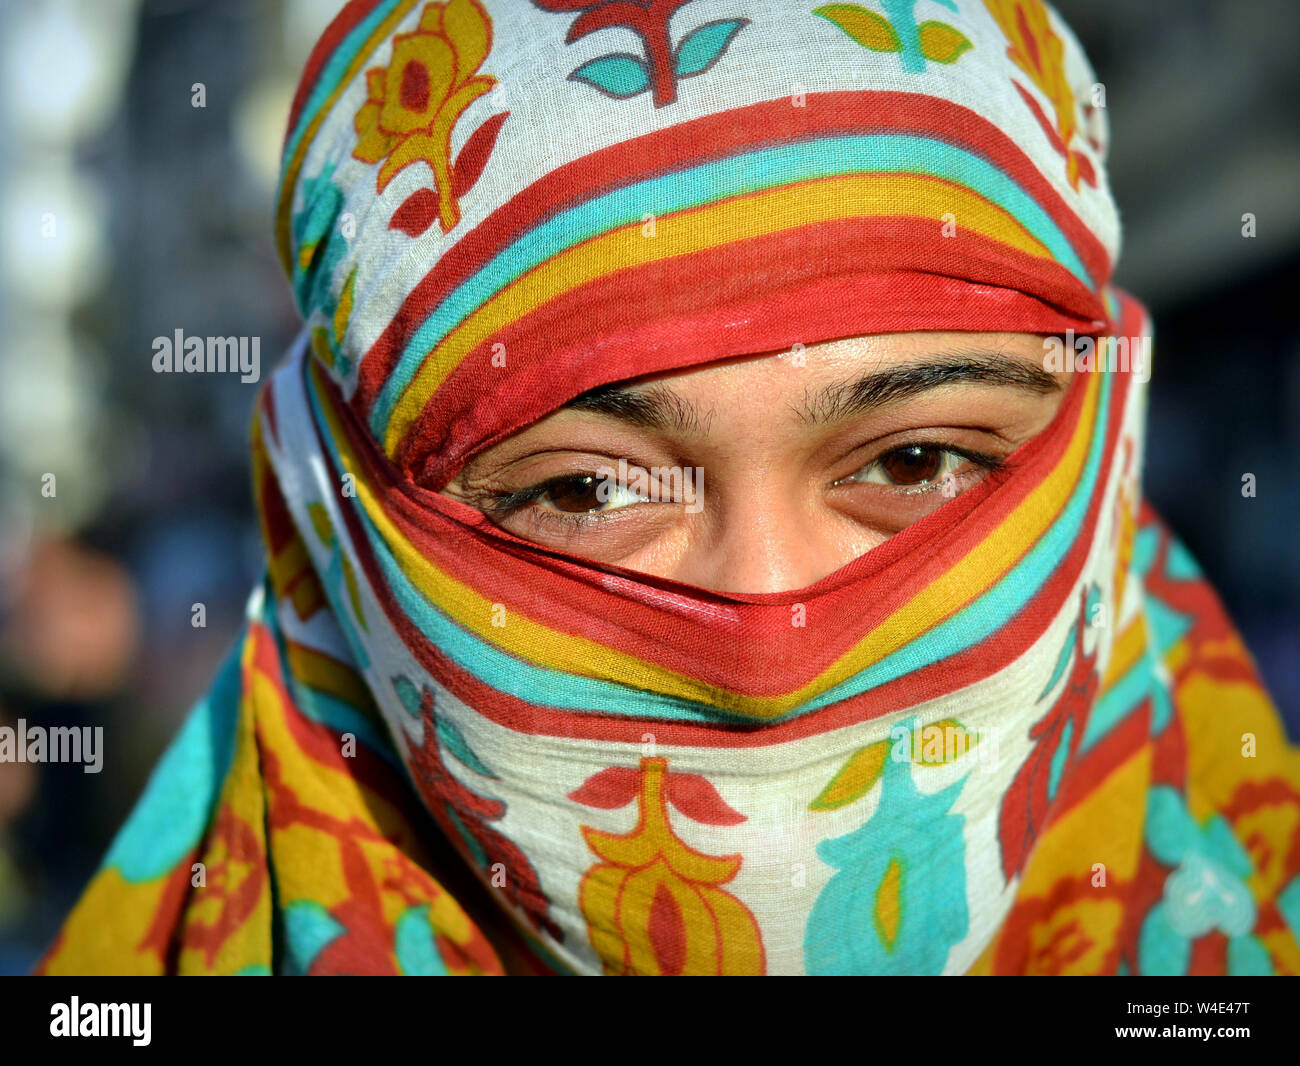 Indian Nose Stock Photos & Indian Nose Stock Images - Alamy